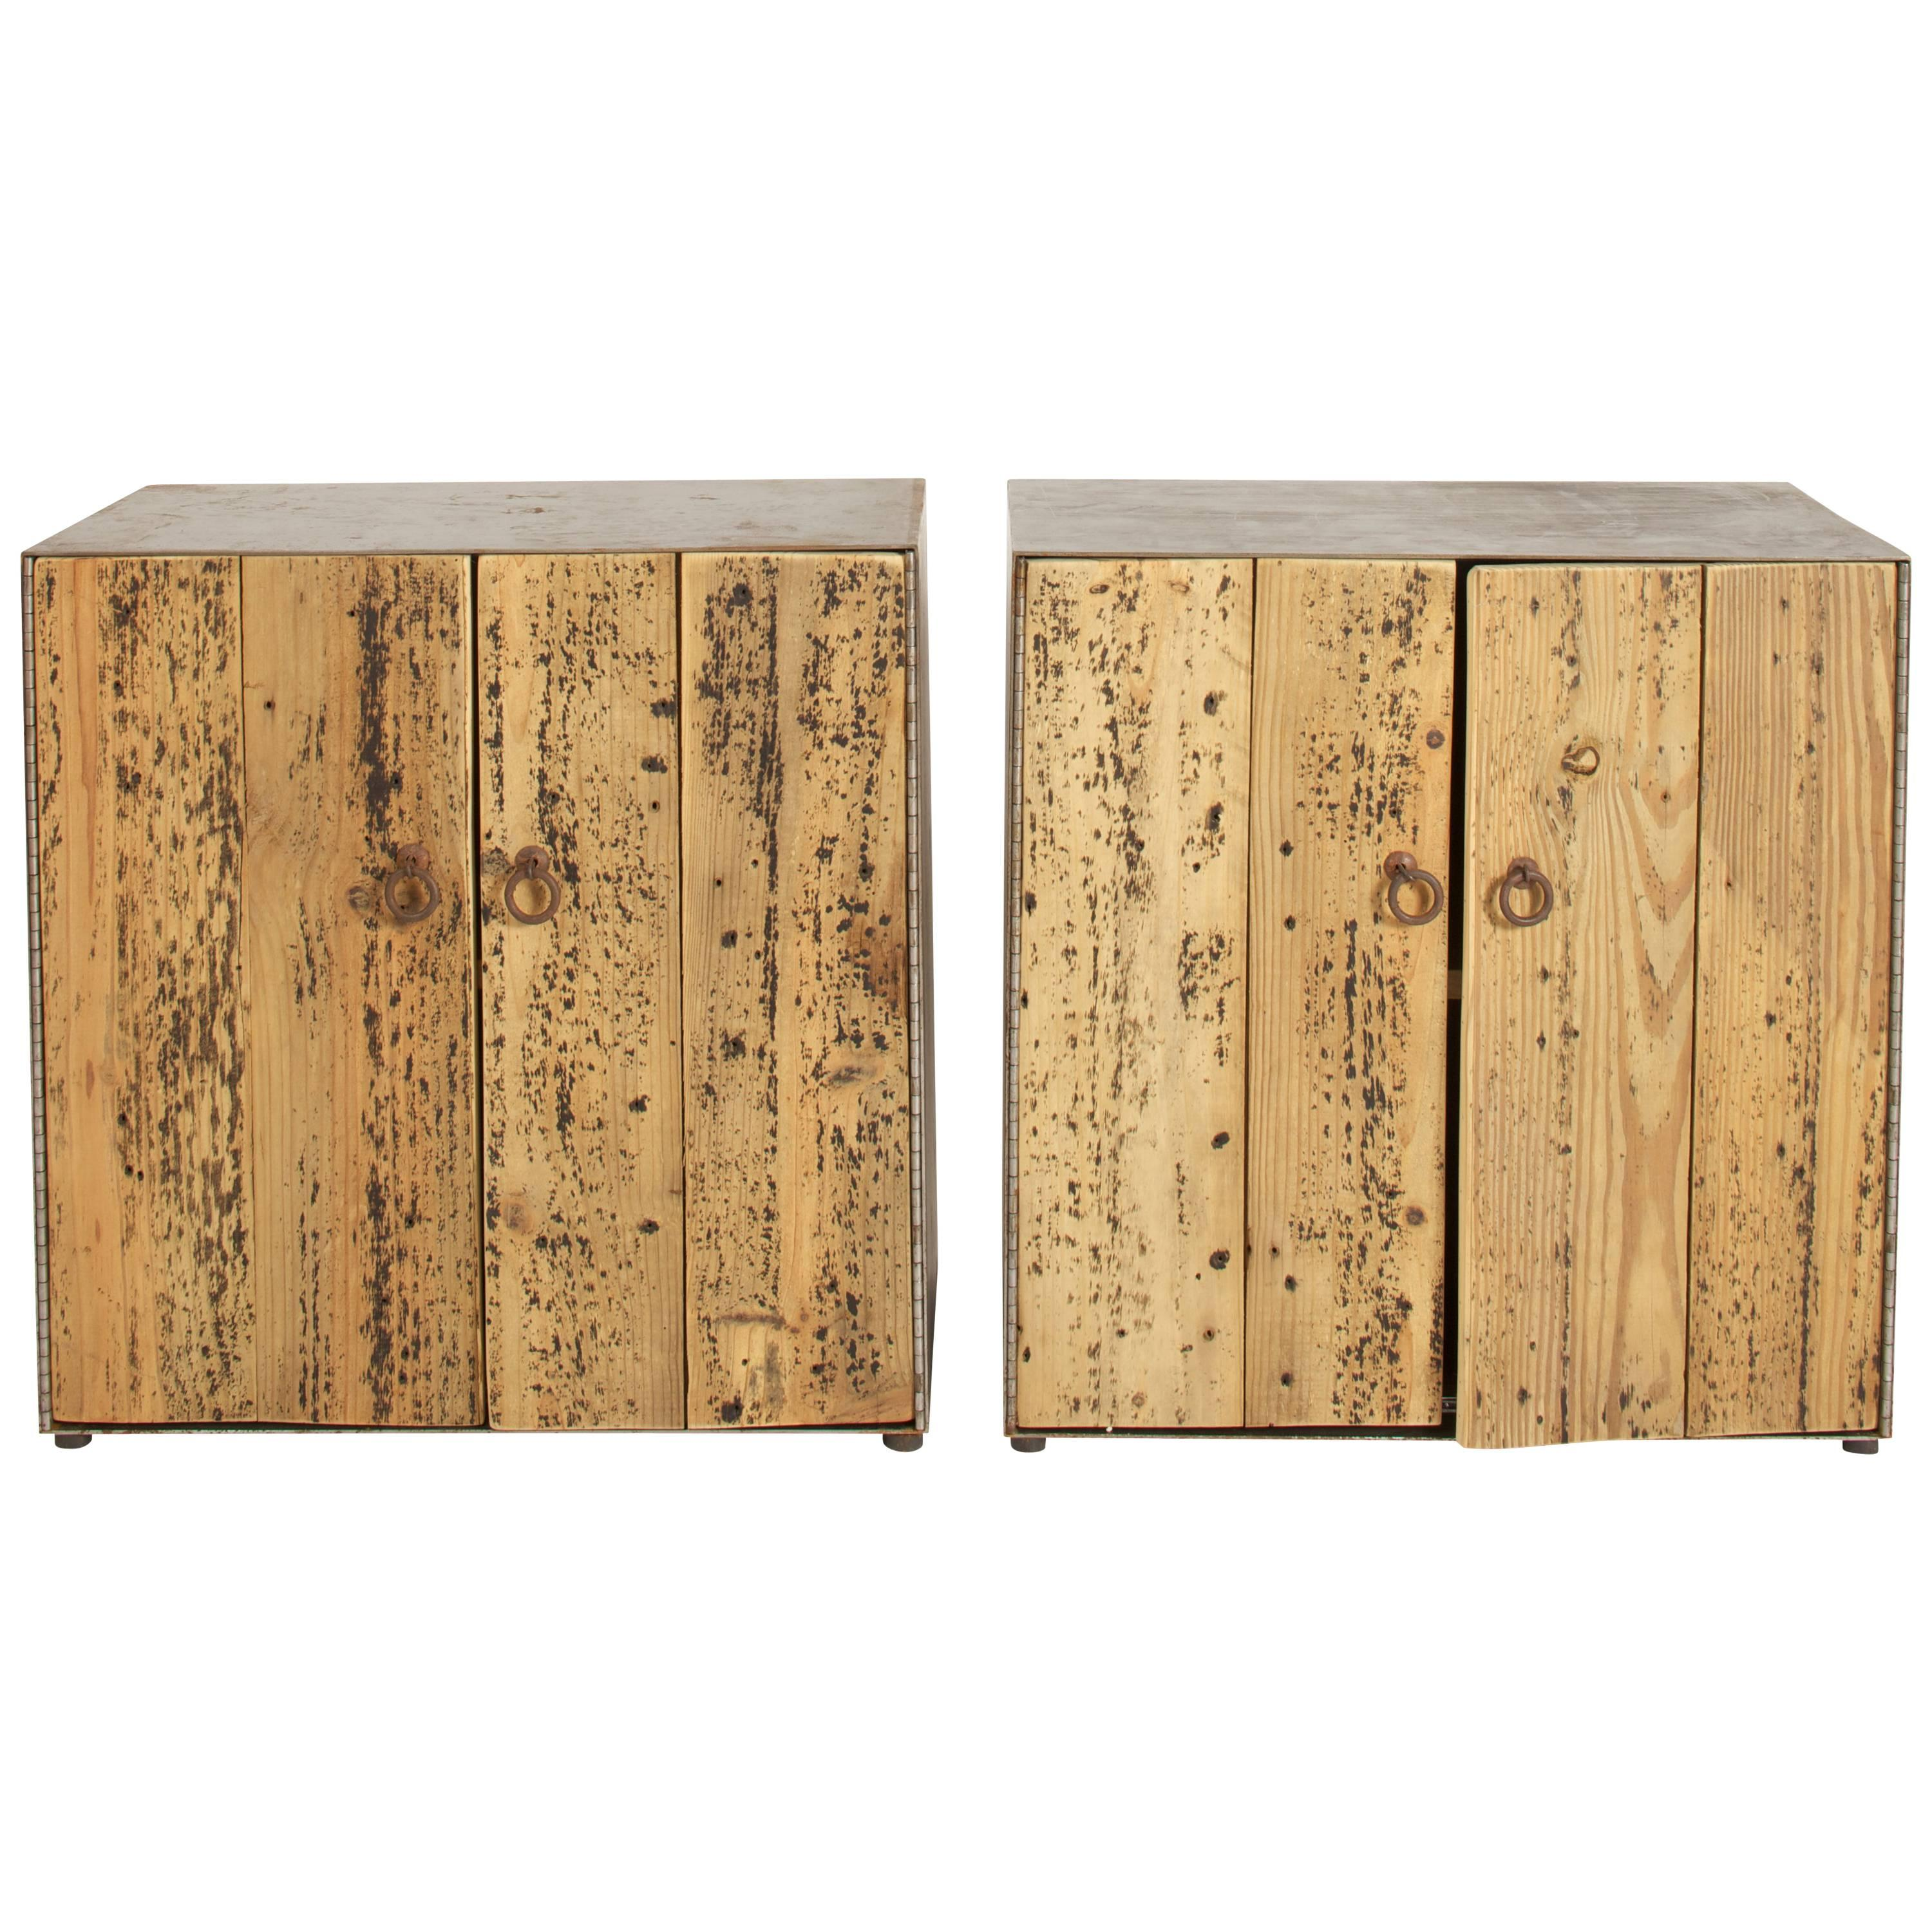 Rustic Pine And Steel Cabinets  Sold Singly